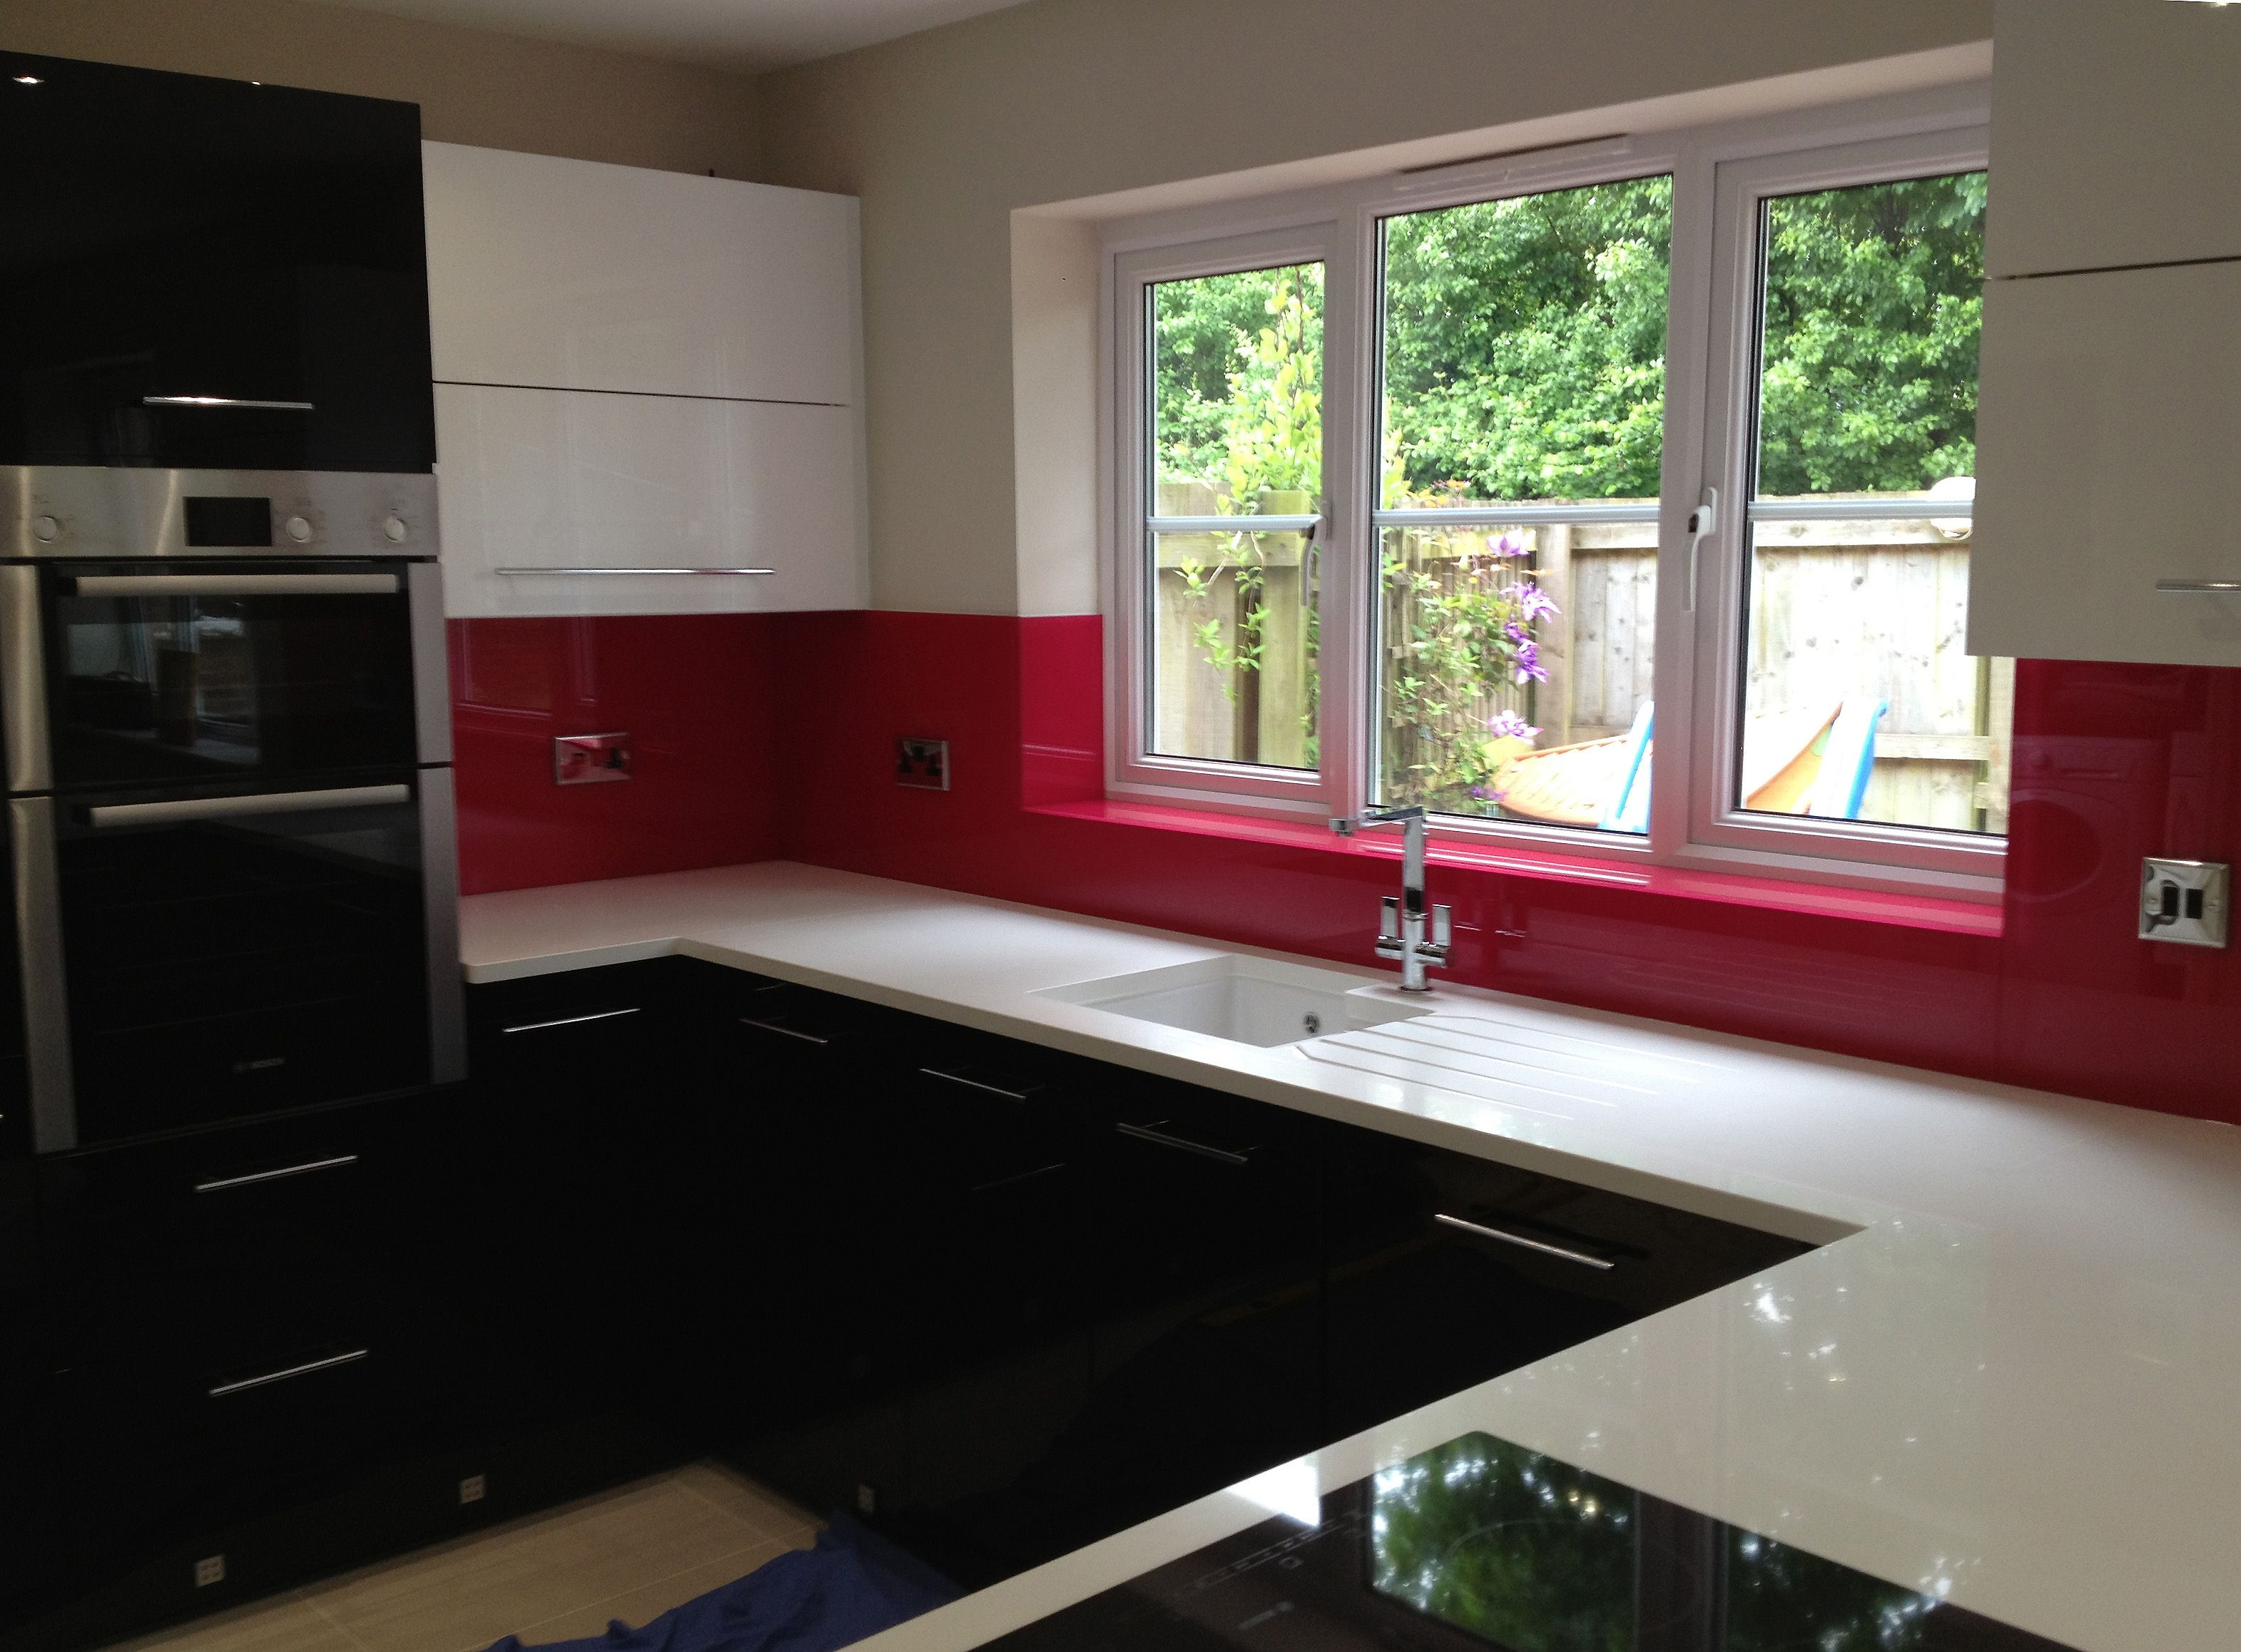 Lovely Cherry Red Glass Splashback Fitted By Easy Glass Splashbacks Showing A Glass Window Sill